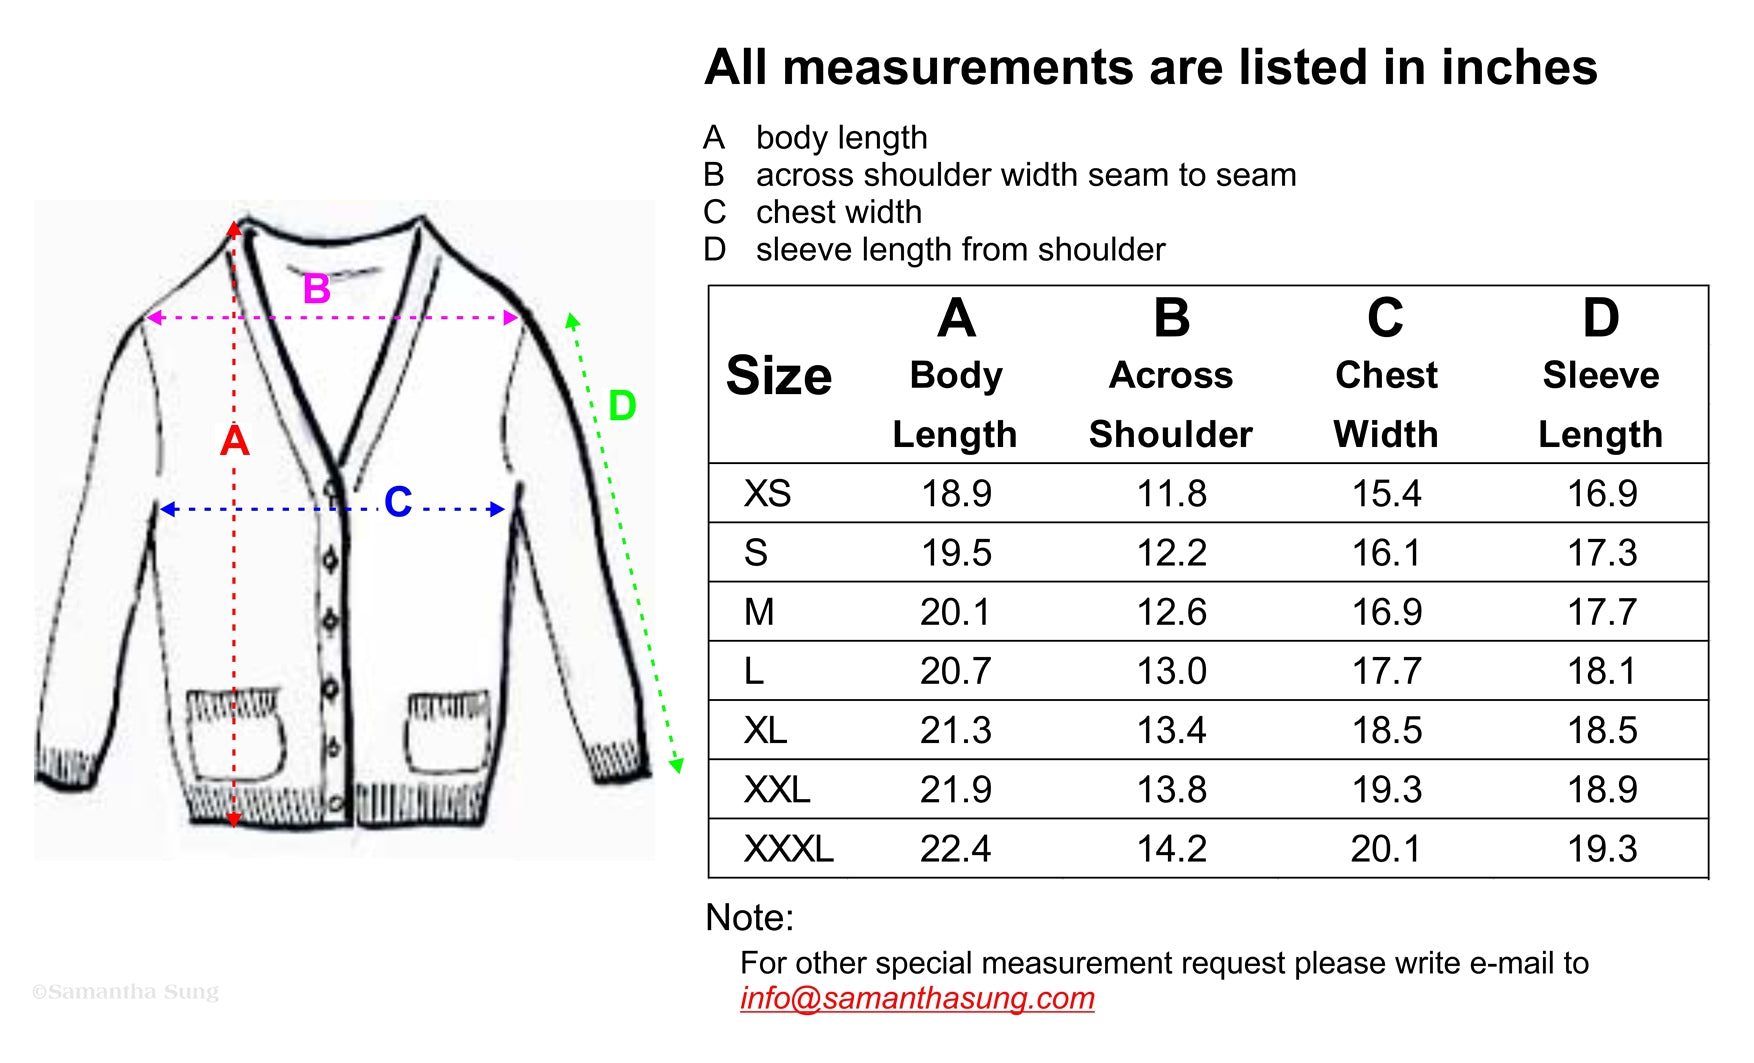 Charlotte Cardigan Short Size Chart INCH Spec By Samantha Sung